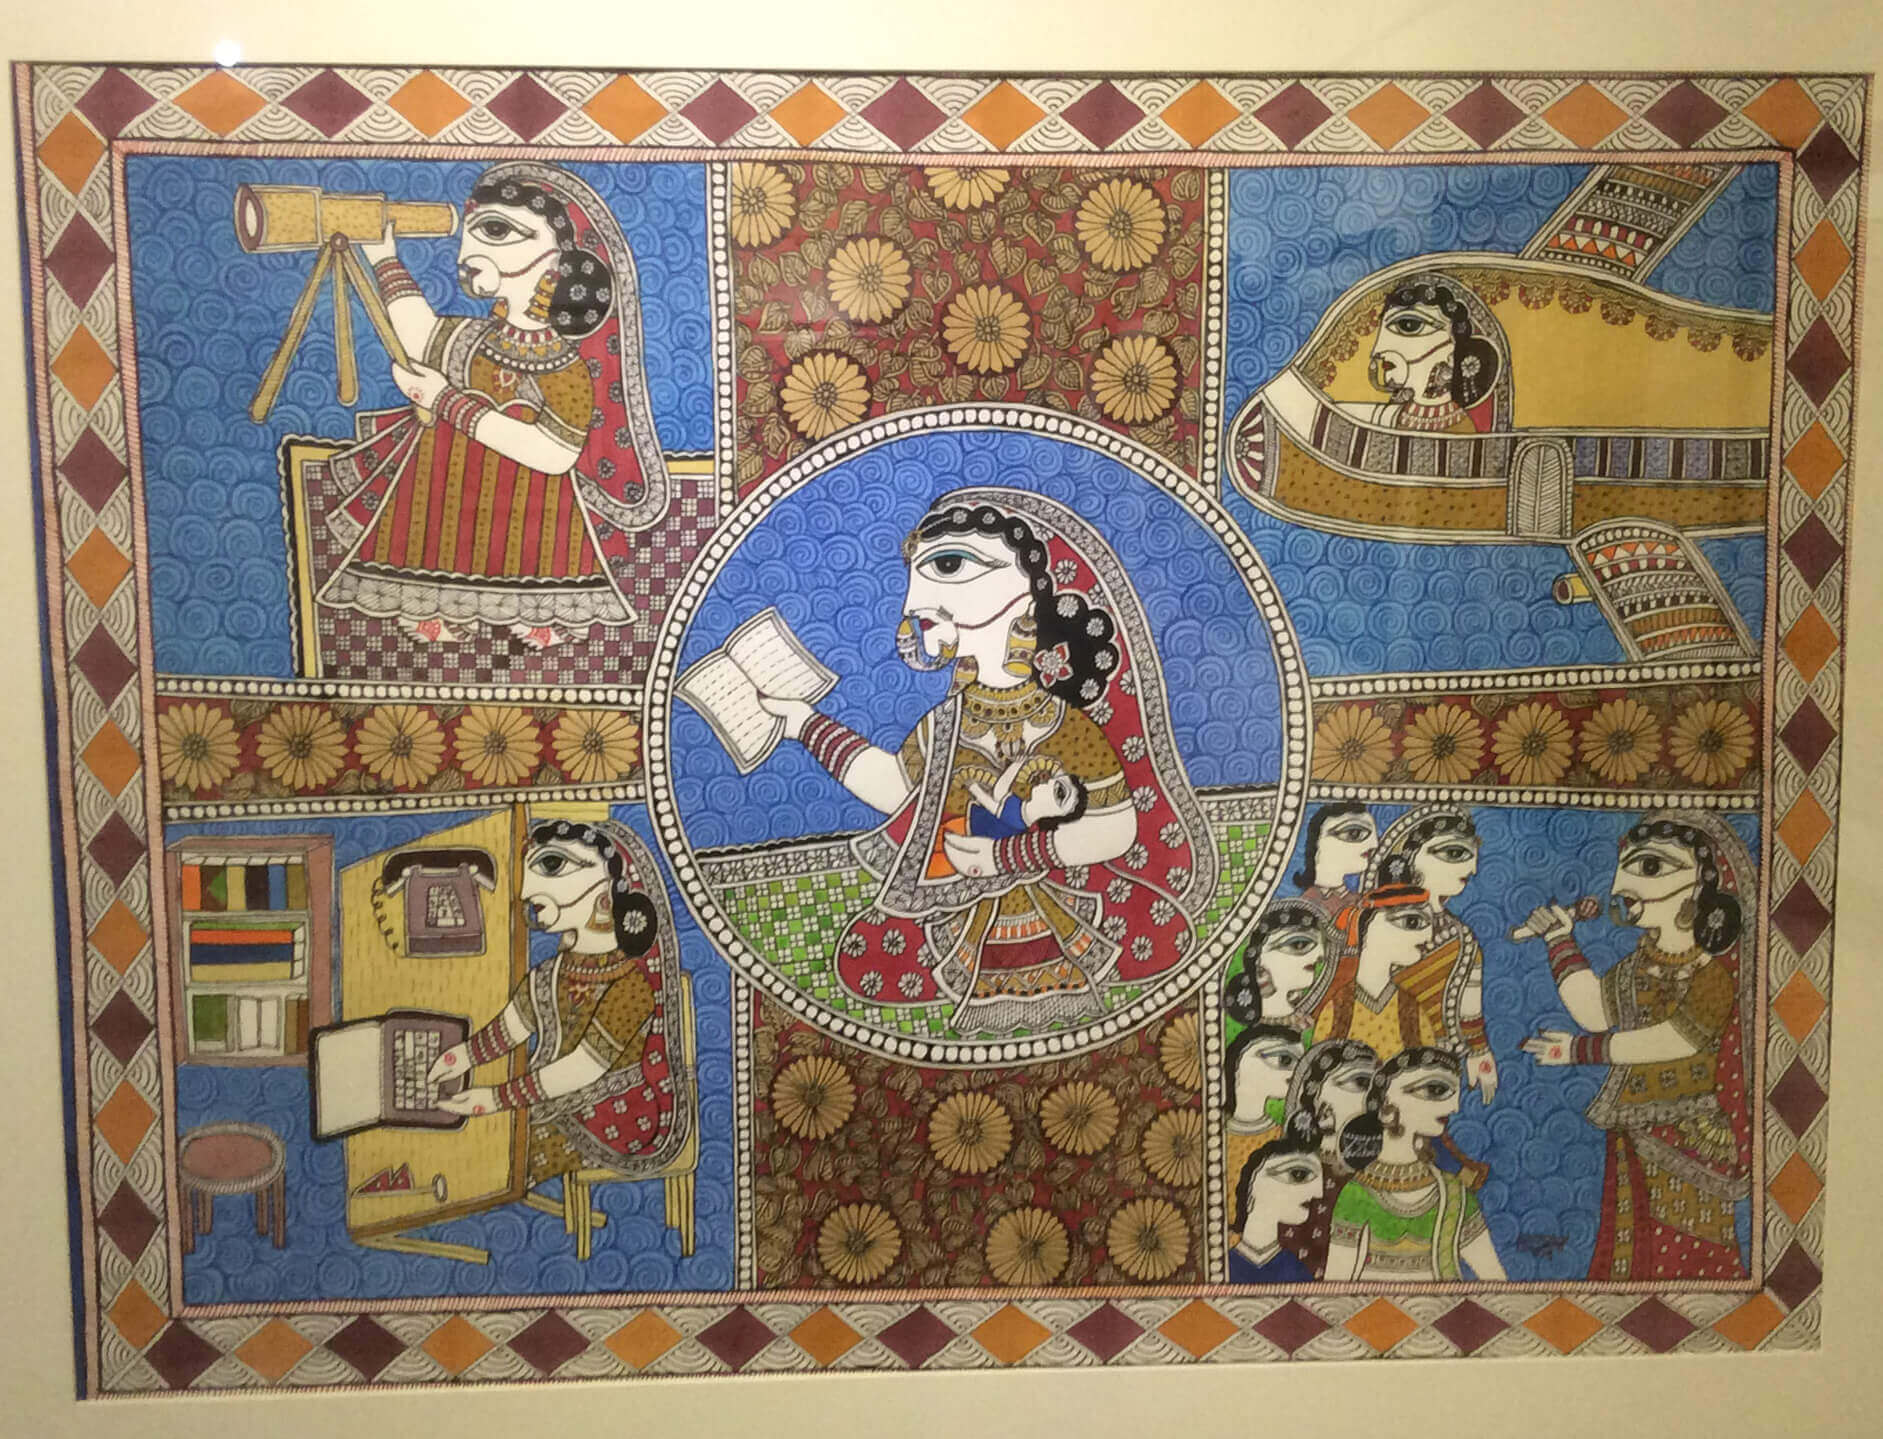 Mithila art with a message